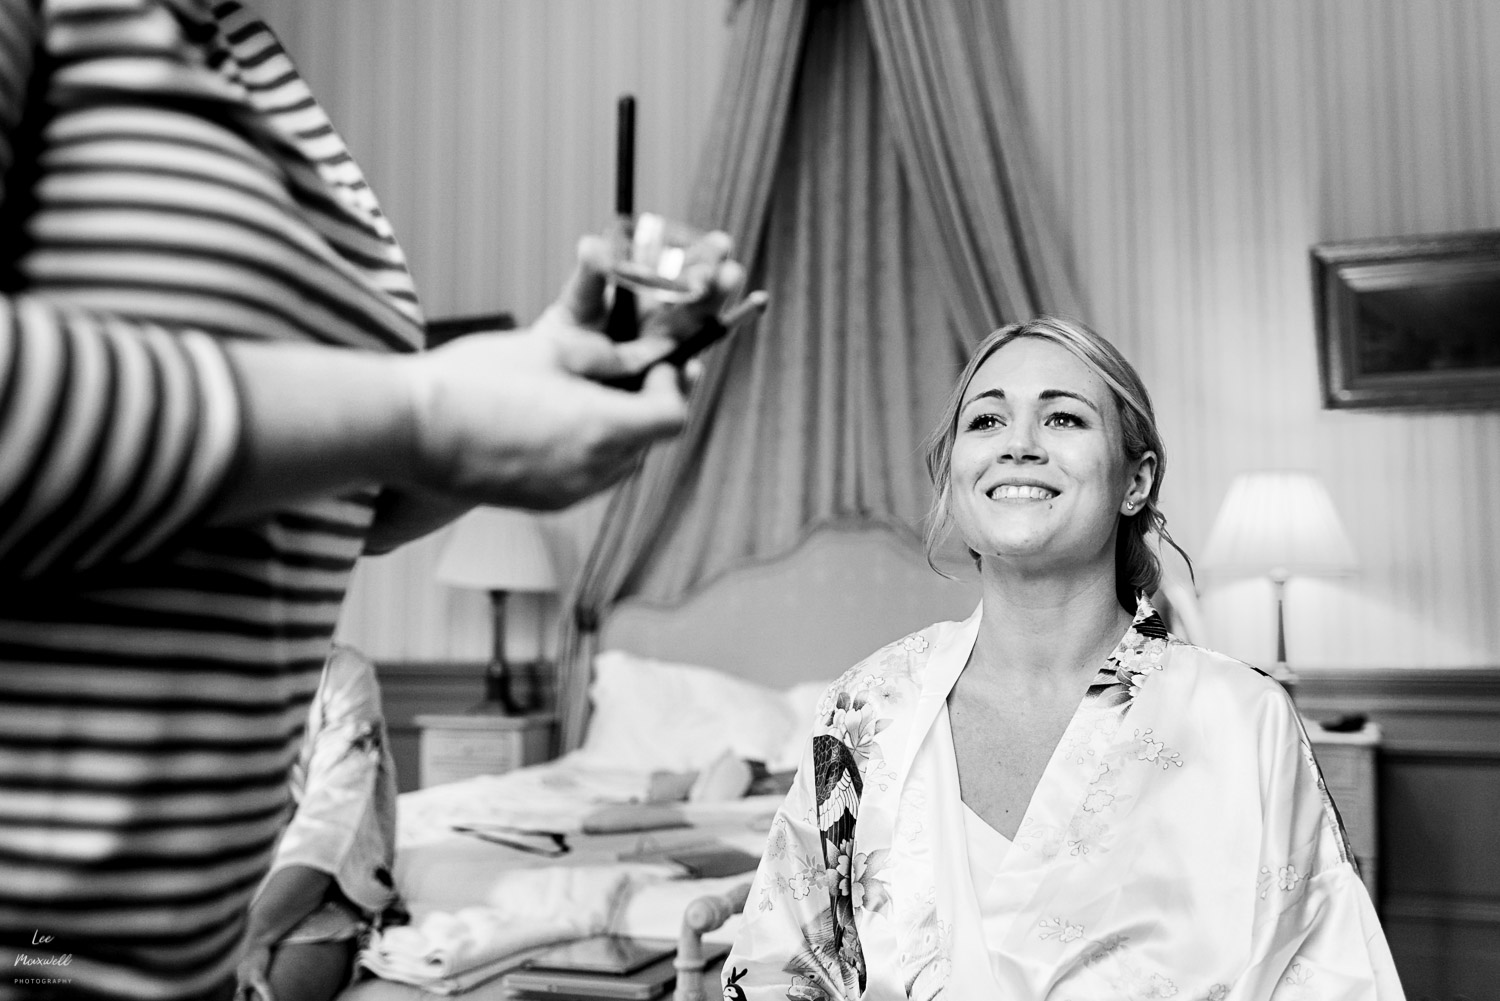 Smiling bride in prep